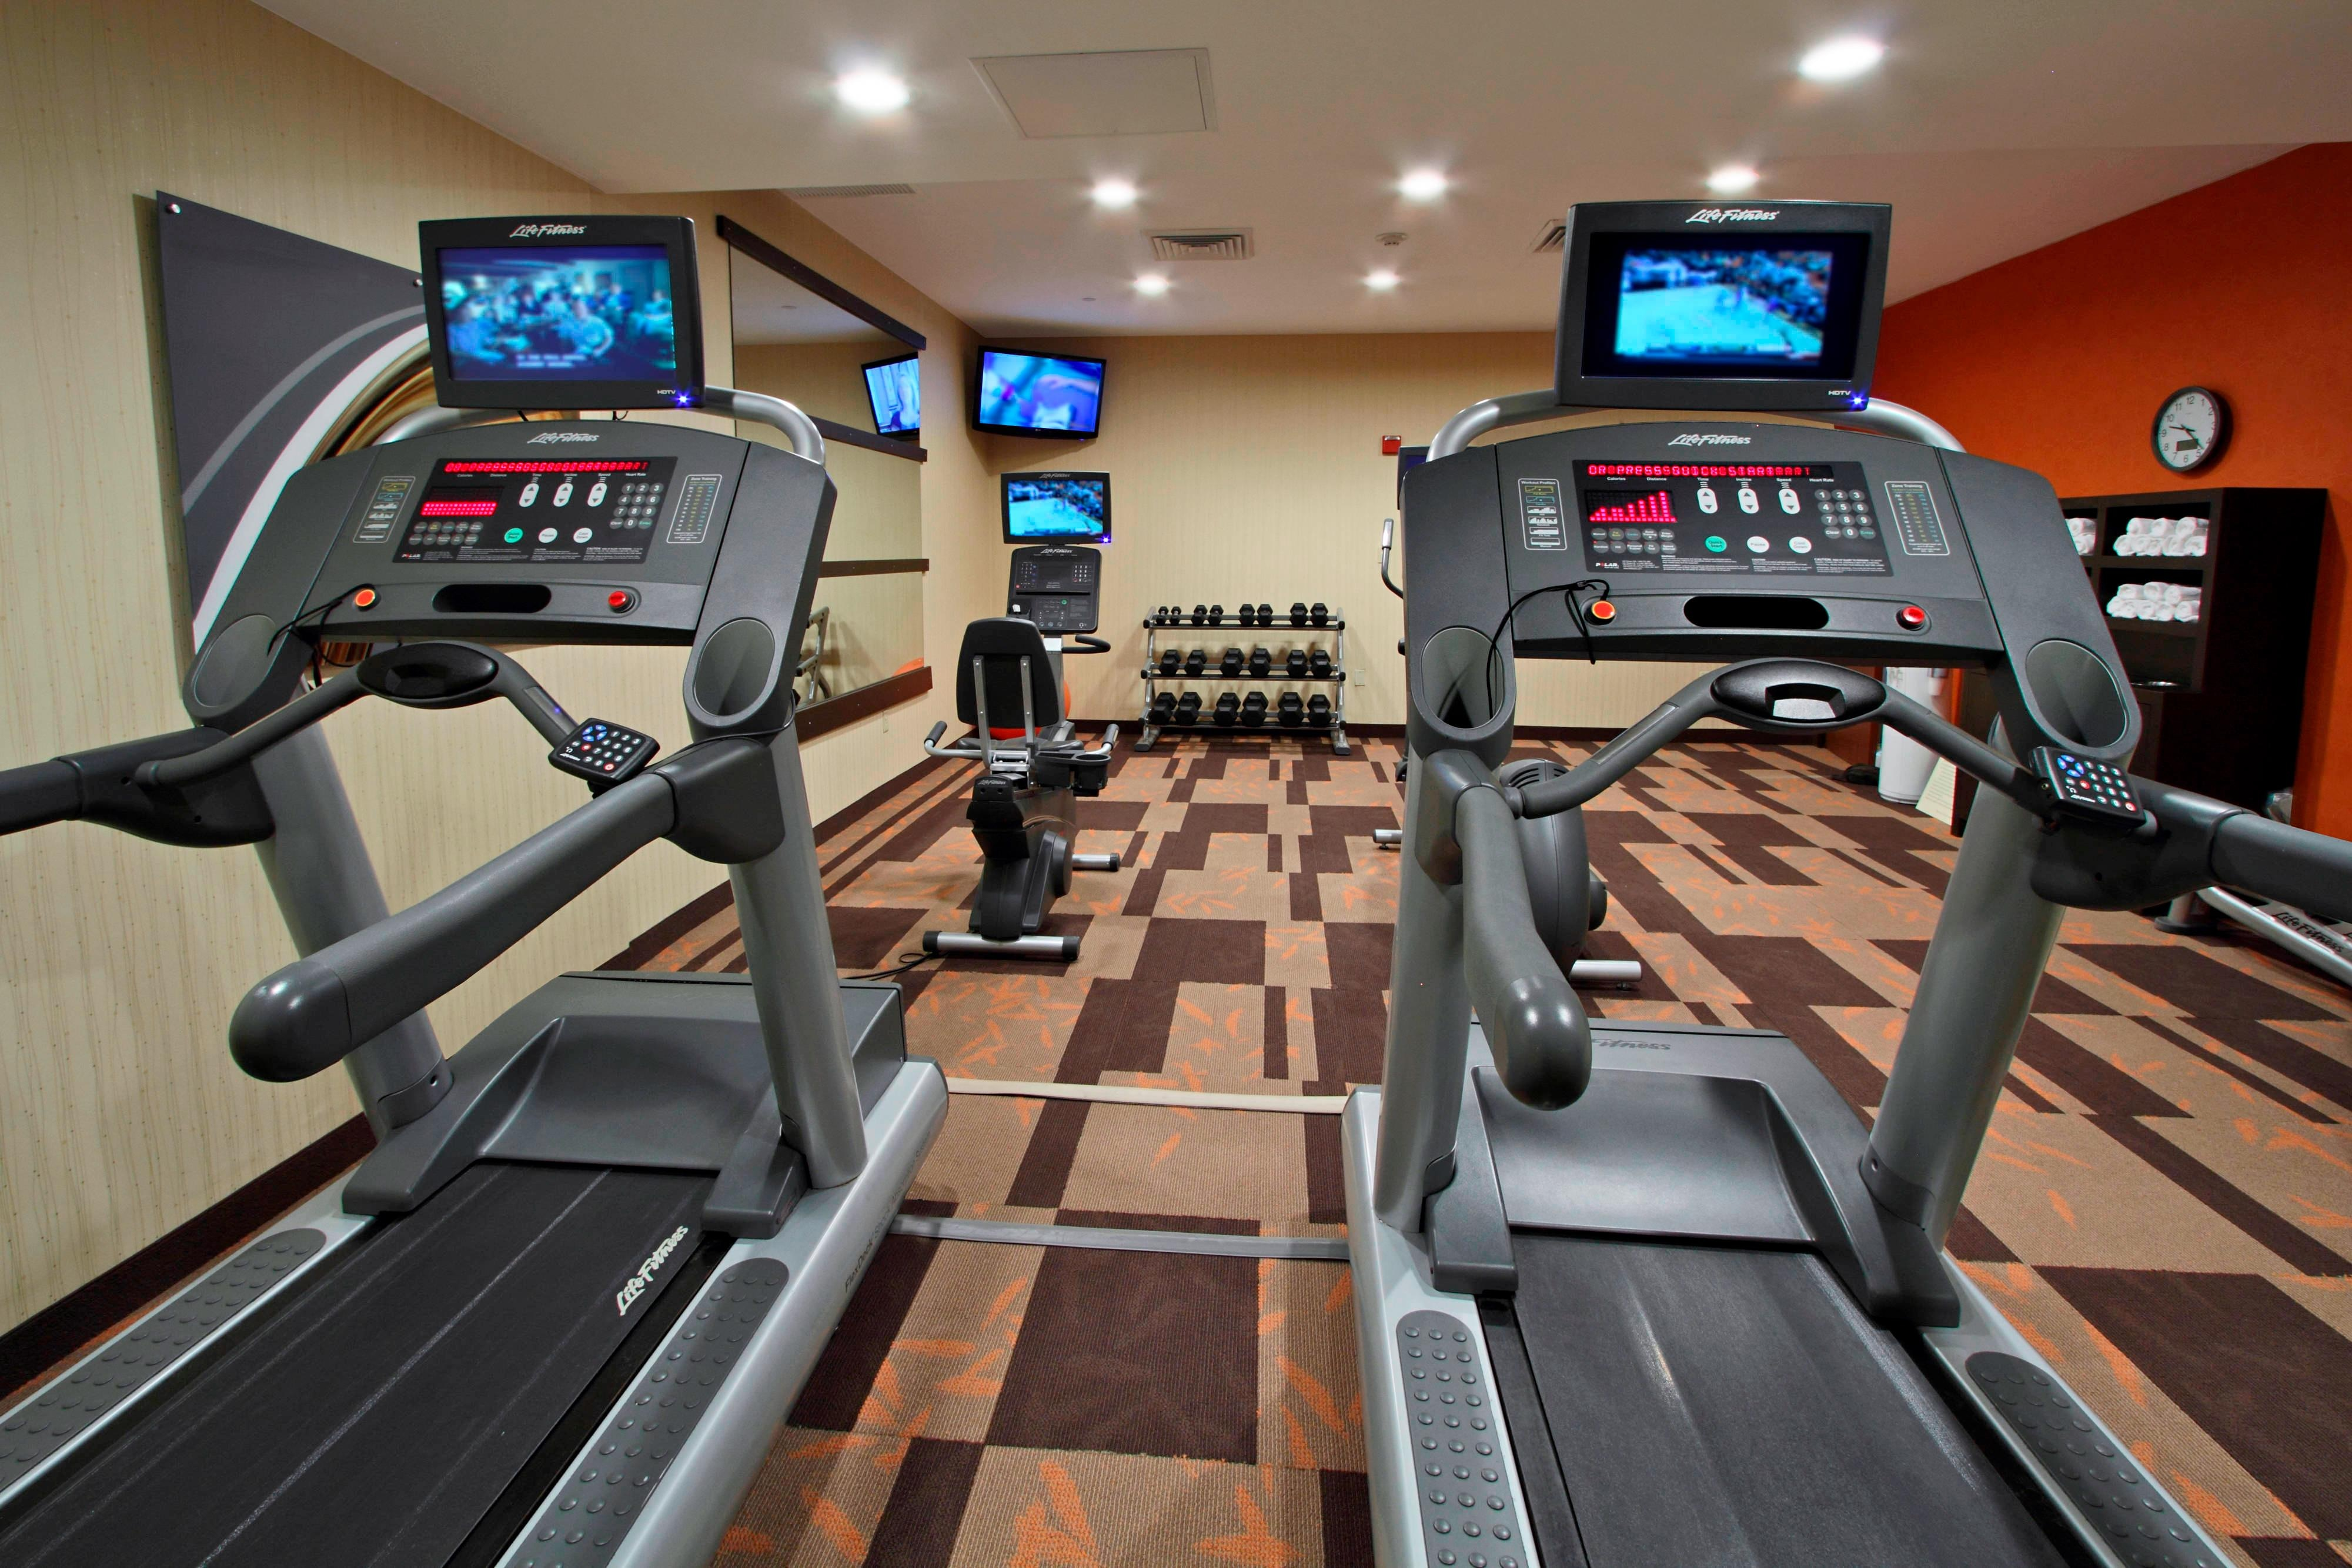 Rockaway hotel fitness center